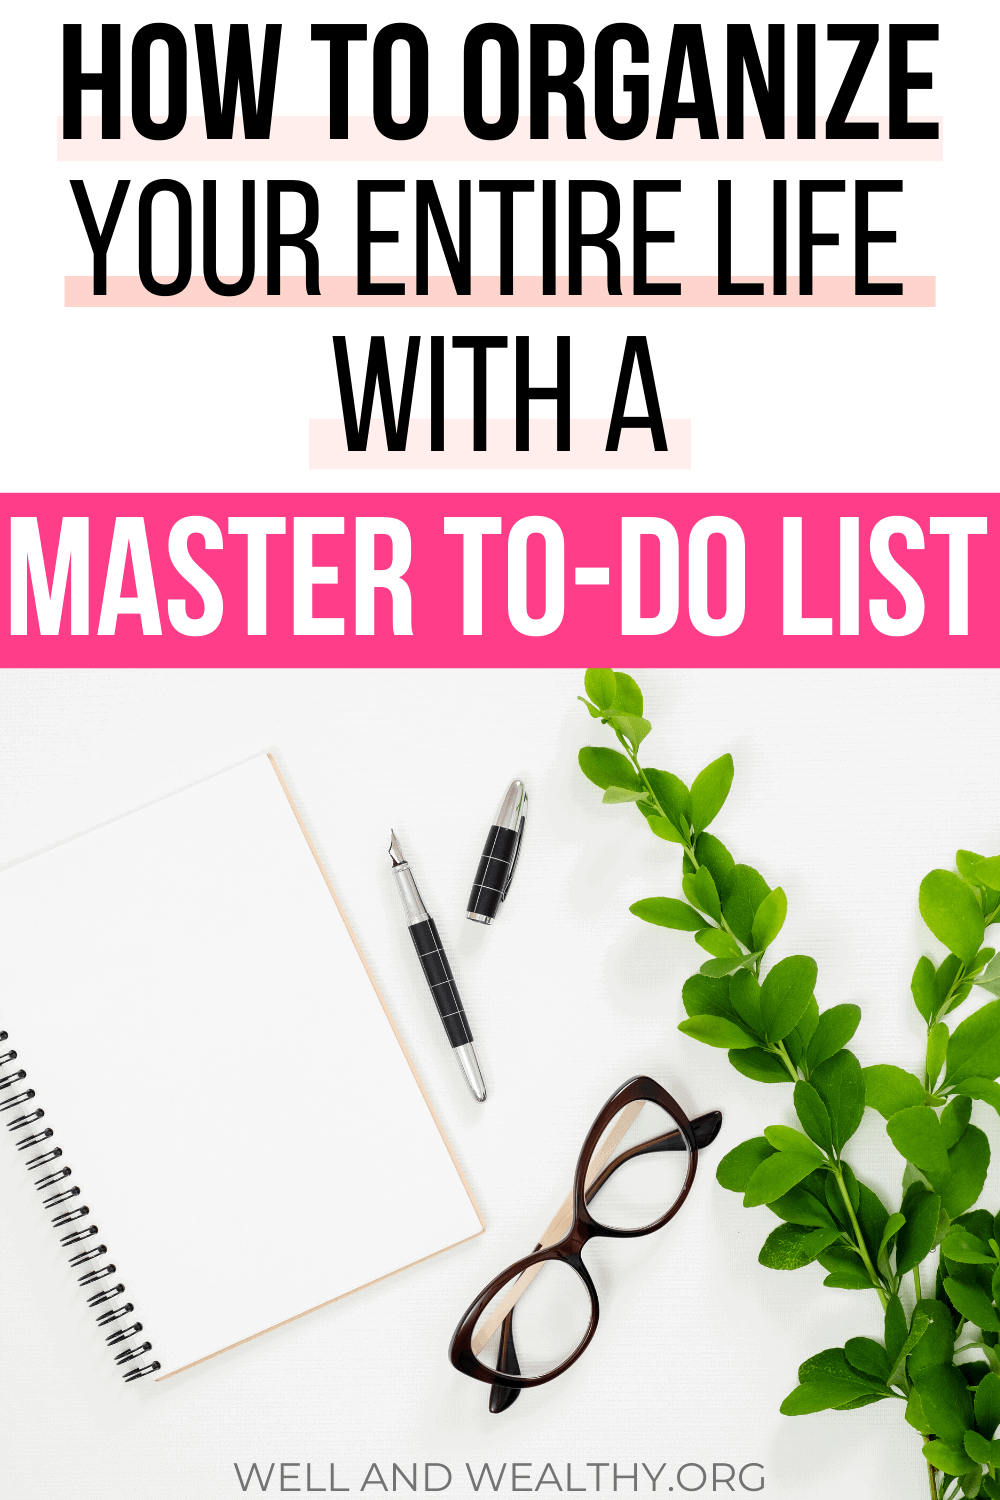 Want to learn my secret to getting everything done? All my to-do list organization ideas? How I get organized and how you can organize everything in your life? Then you need this post where I teach you how to organize your life with a master to do list! Plus grab your master to-do list FREE printable. No more confusion over organization, time management, gaining motivation, or anything else. A master to-do list handles everything and will become your secret productivity weapon! #todolist #getorganized #printable #organizing